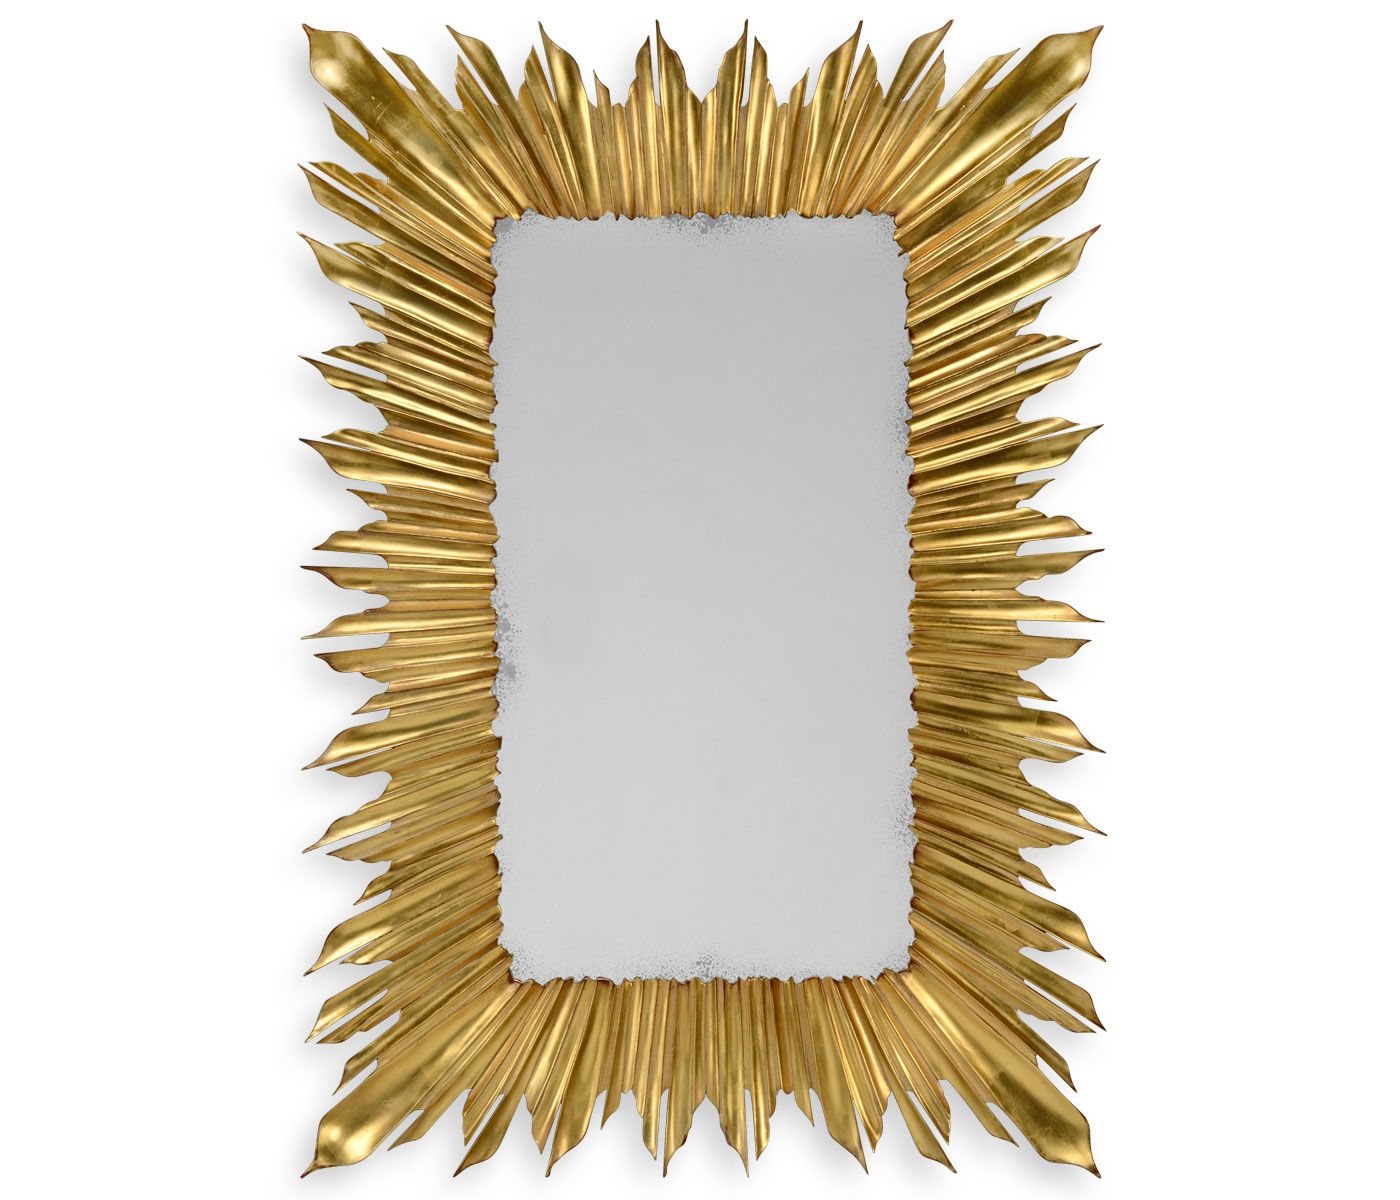 gold-framed-wall-mirrors-4.gif 1,400×1,200 pixels